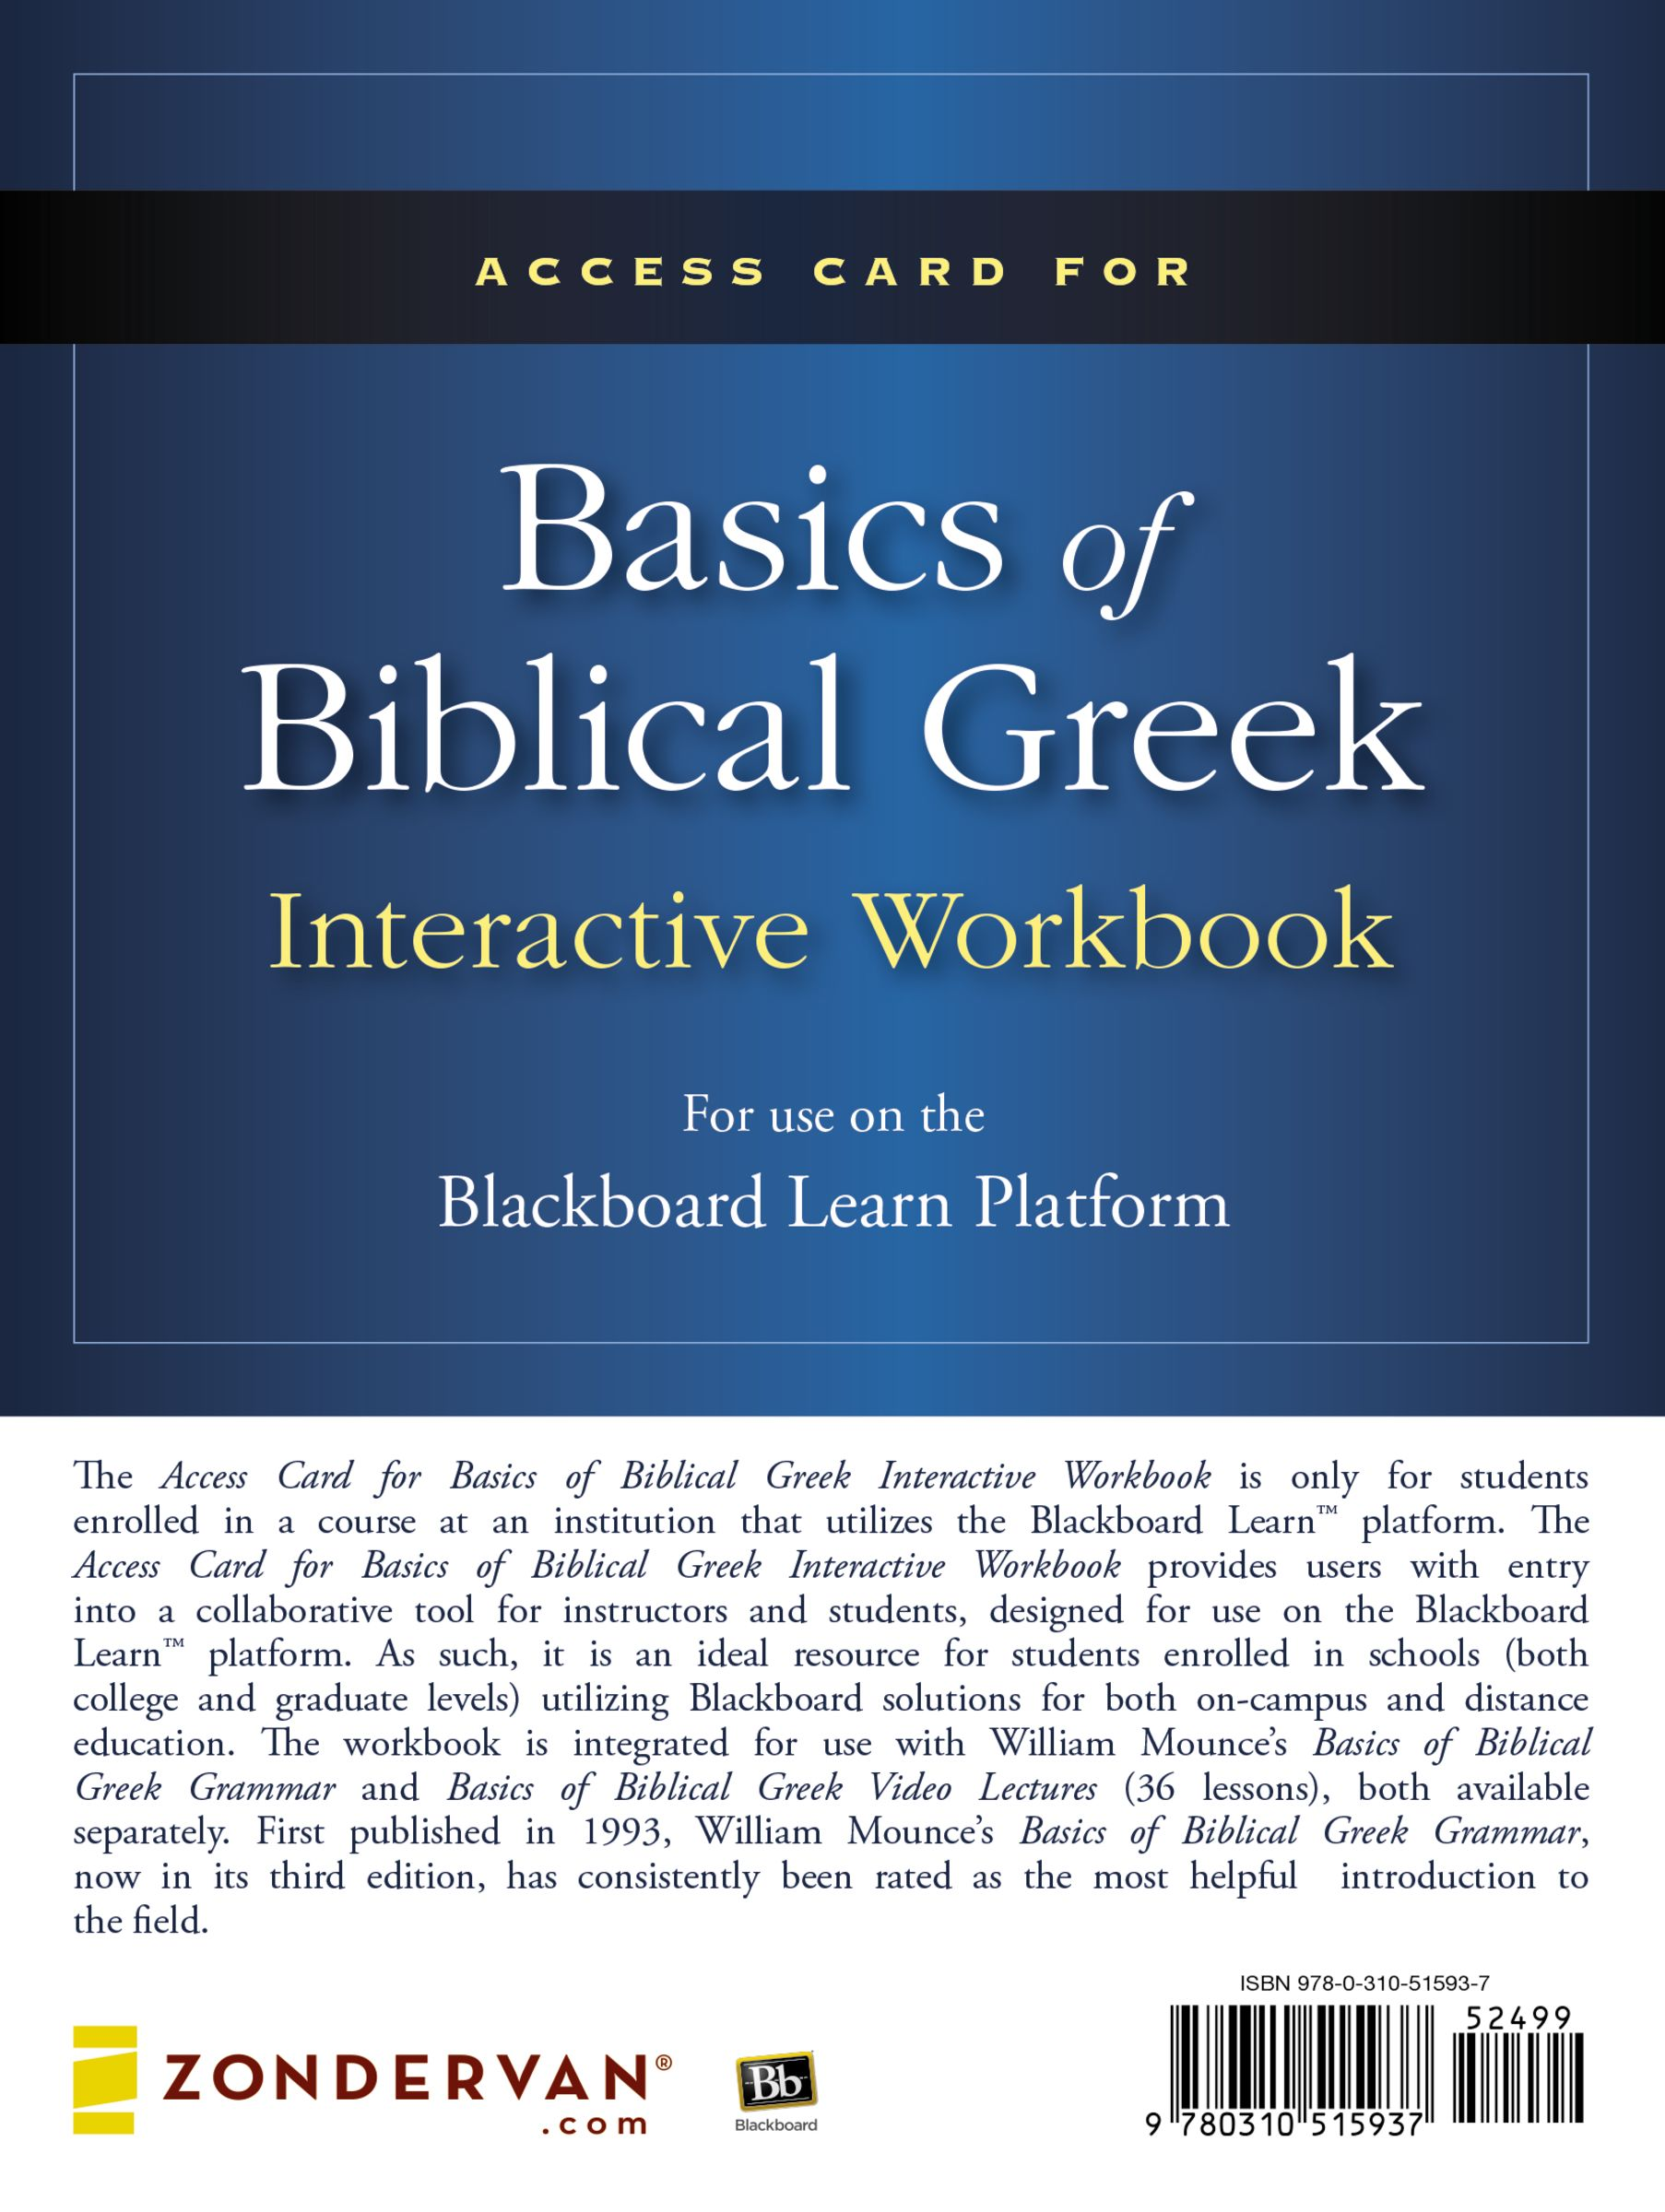 Access Card for Basics of Biblical Greek Interactive Workbook